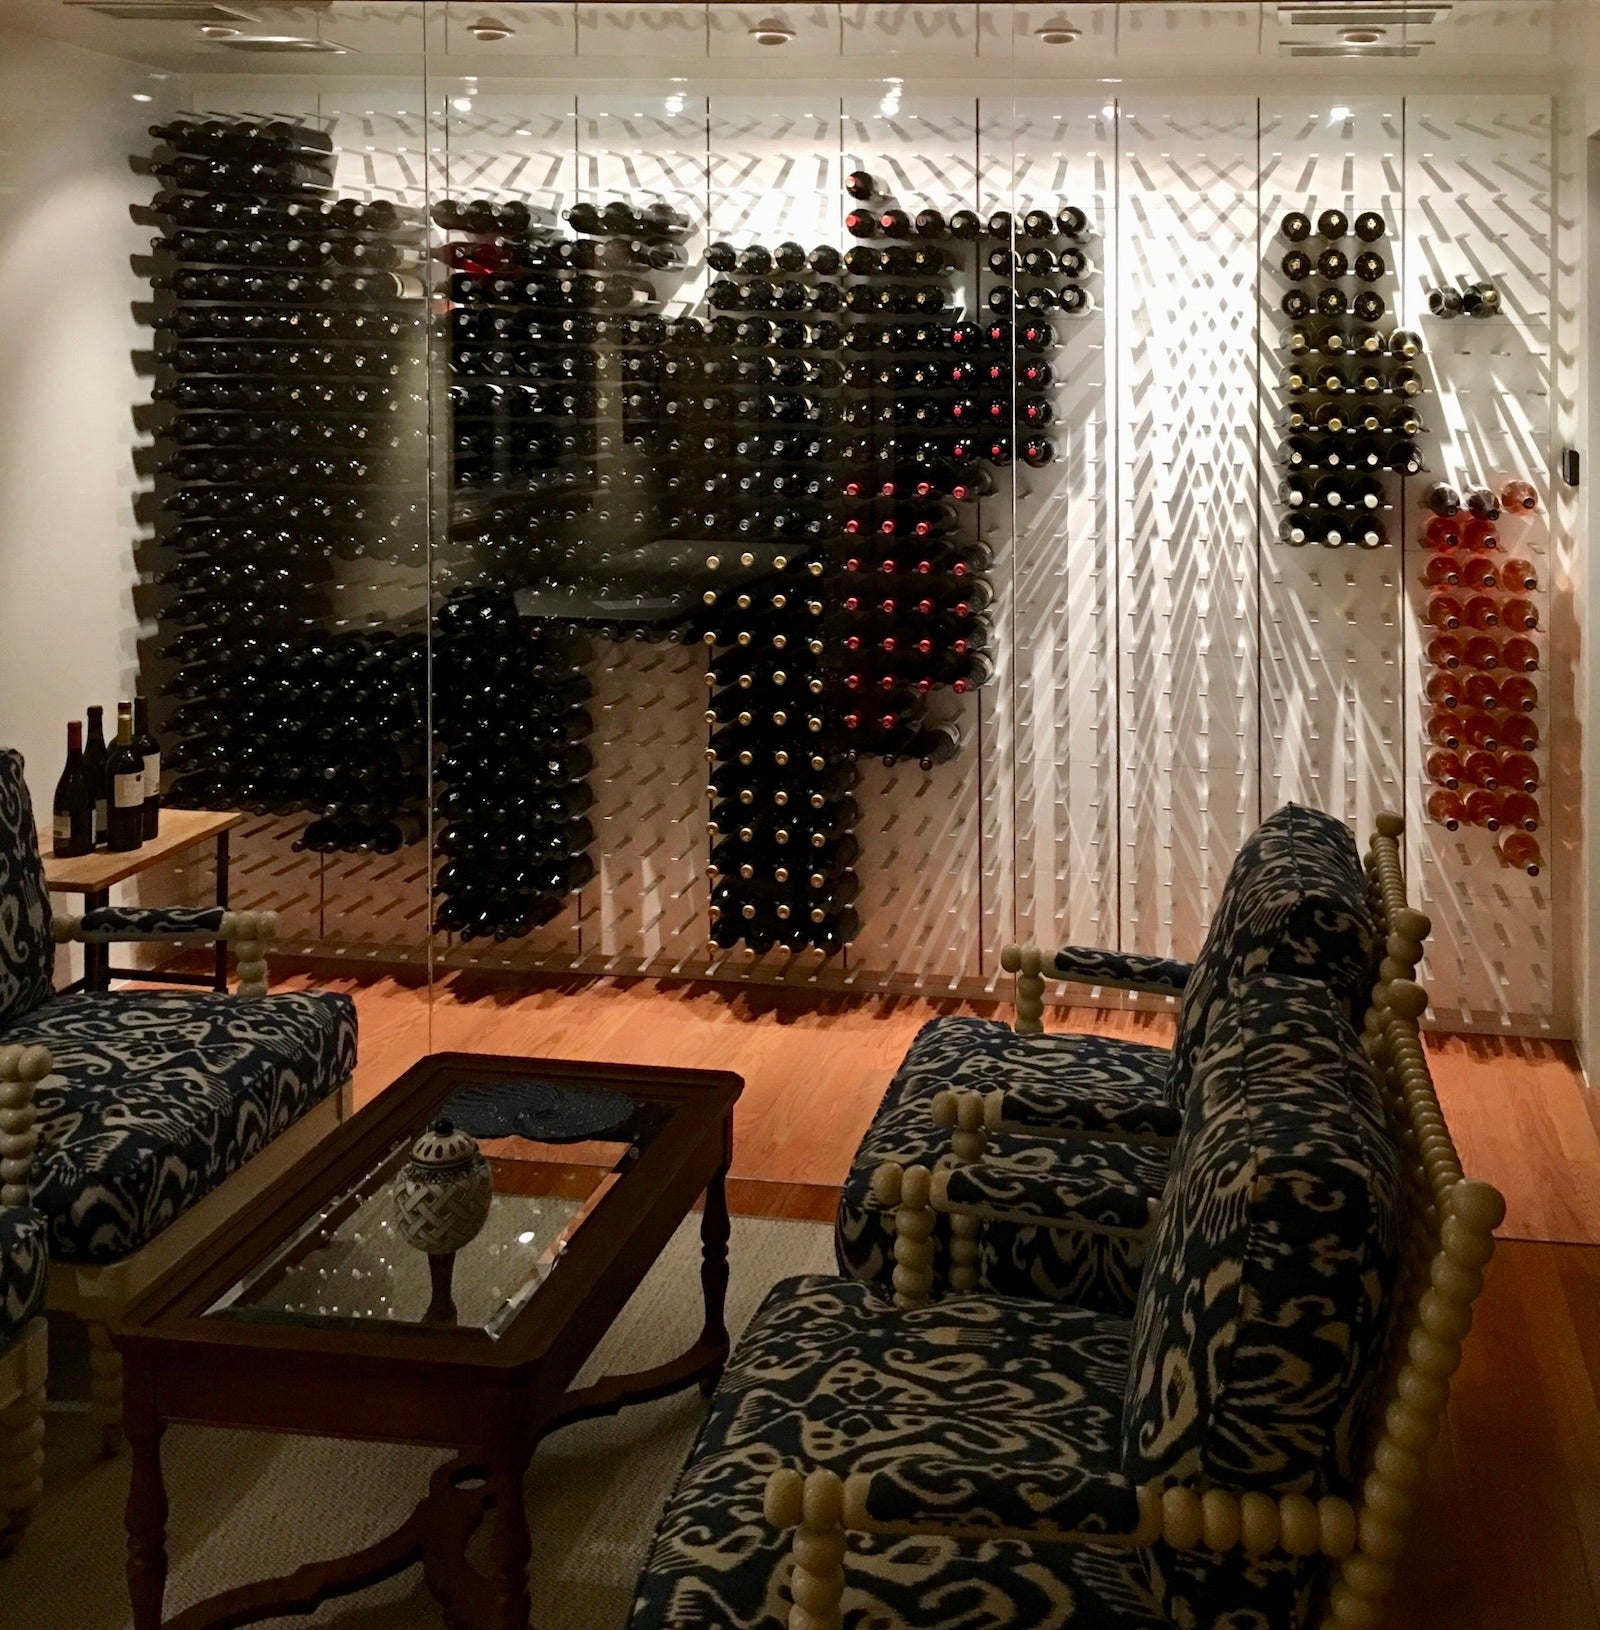 wall to wall glass wine cellar - westhampton beach home